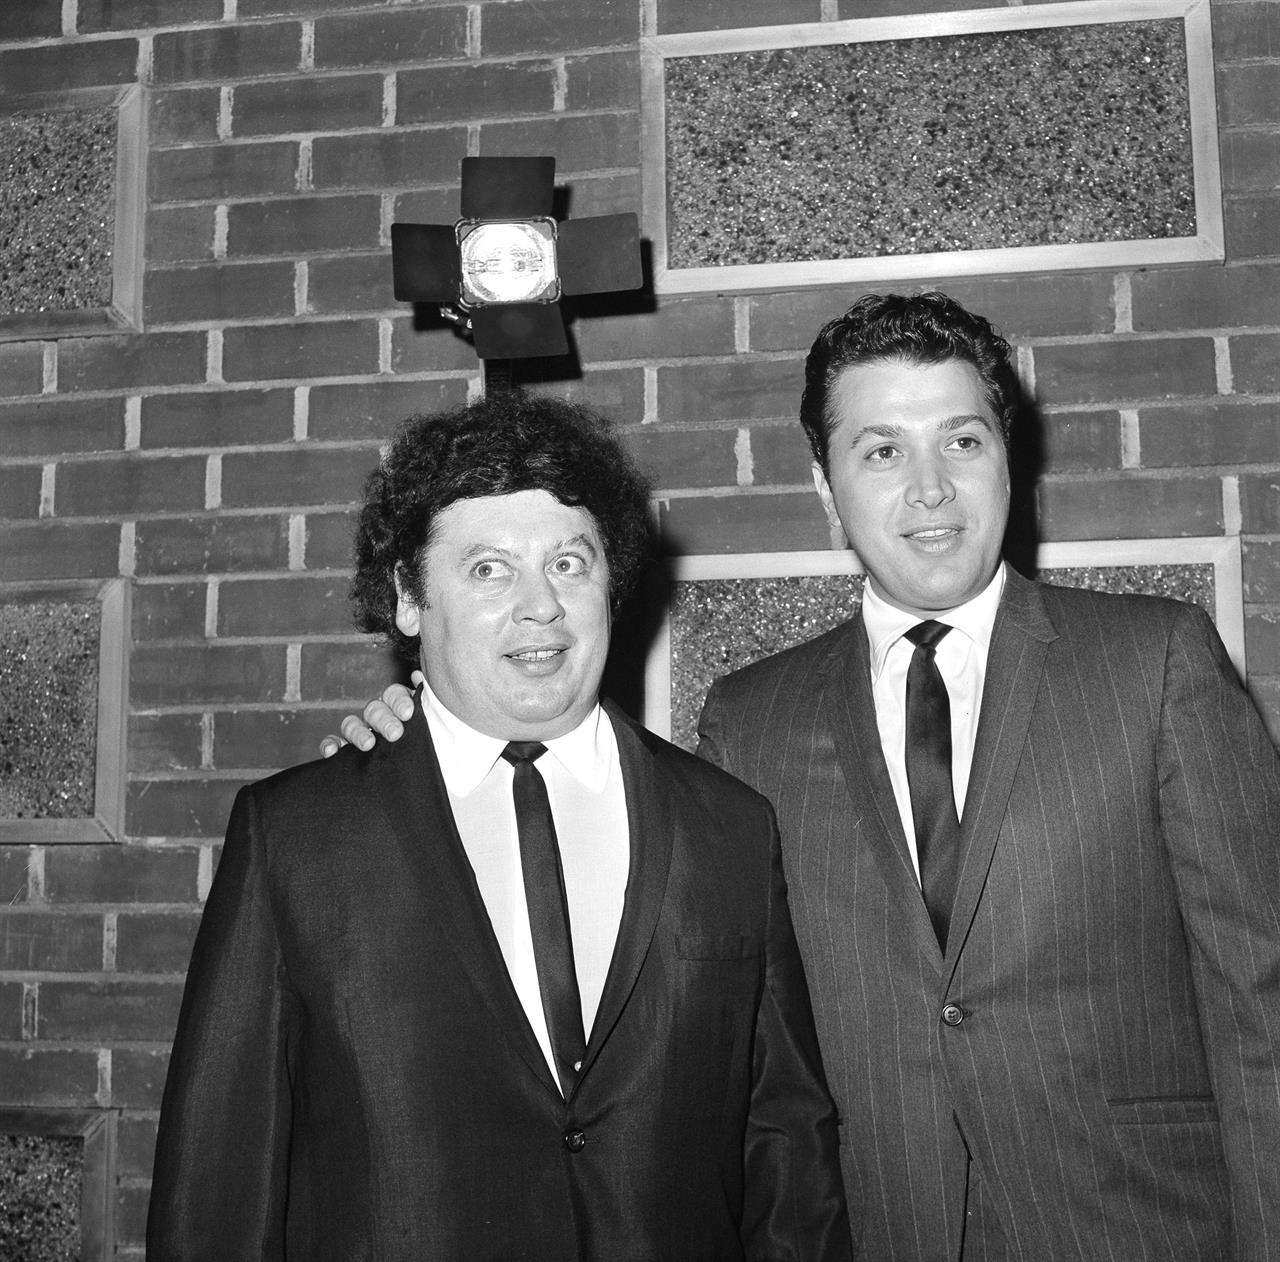 Comedian marty allen dies in las vegas at 95 am 880 the biz comedian marty allen dies in las vegas at 95 aiddatafo Choice Image